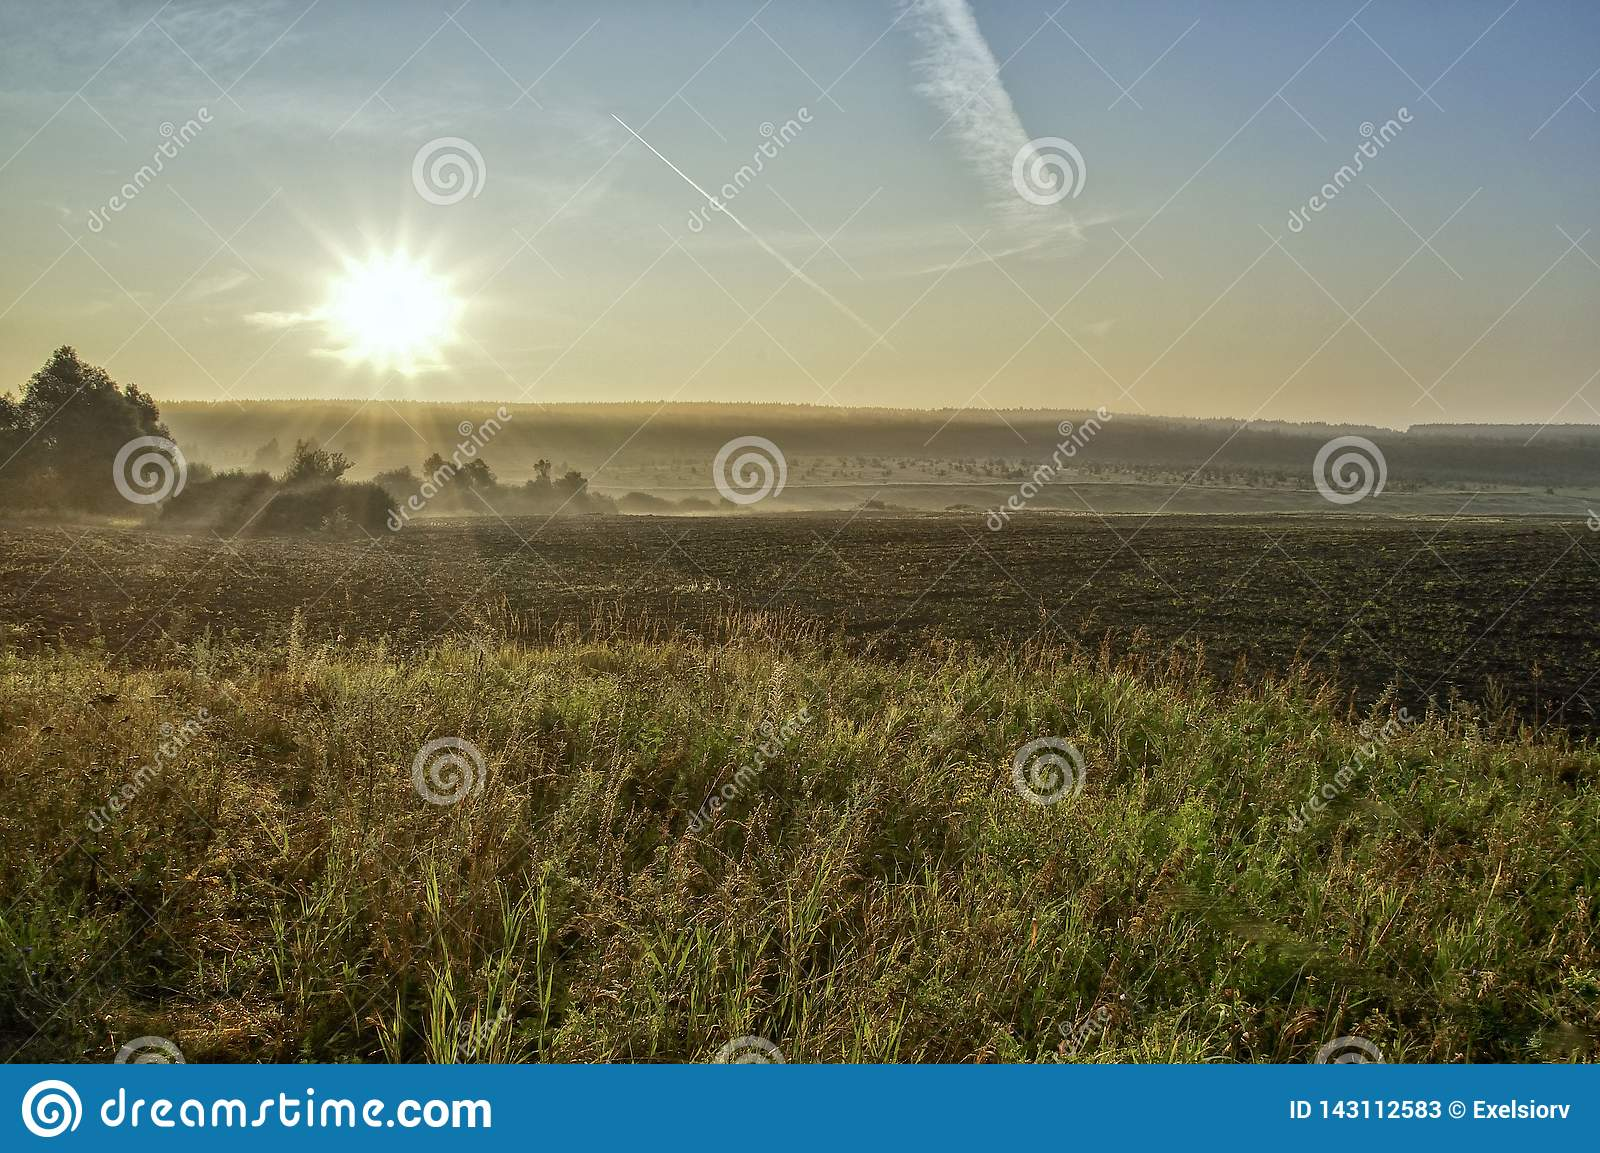 Rising sun over the field, sun rays, vegetation and trees, buildings